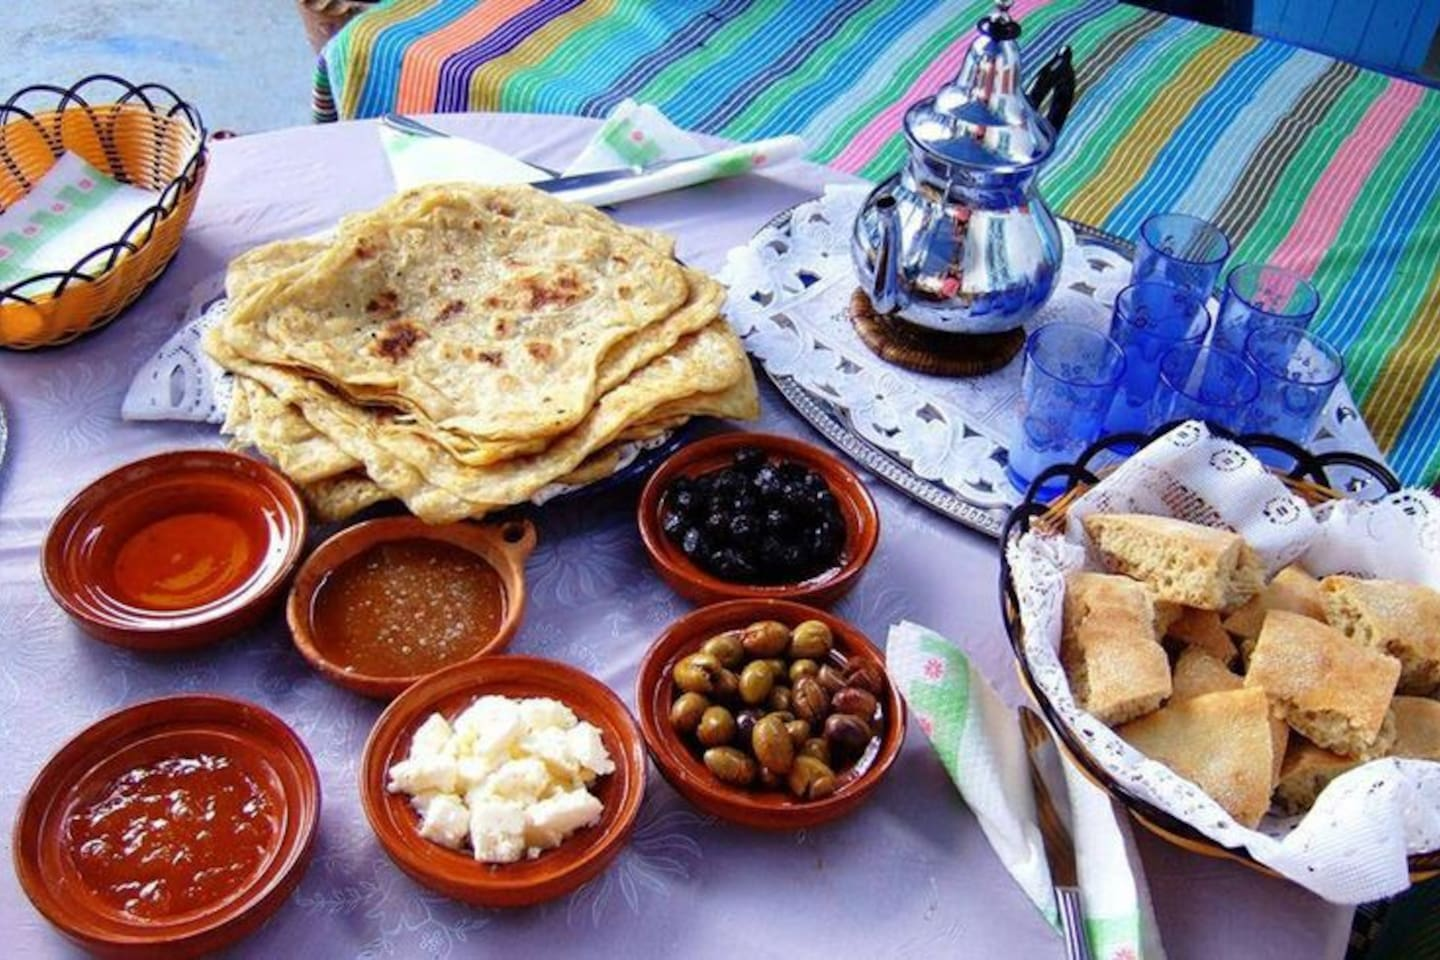 Delicious breakfast included with your stay; enjoy local olives, honey, fresh bread, tea, coffee, freshly-squeezed orange juice, butter, and jam. Guests LOVE our breakfast!